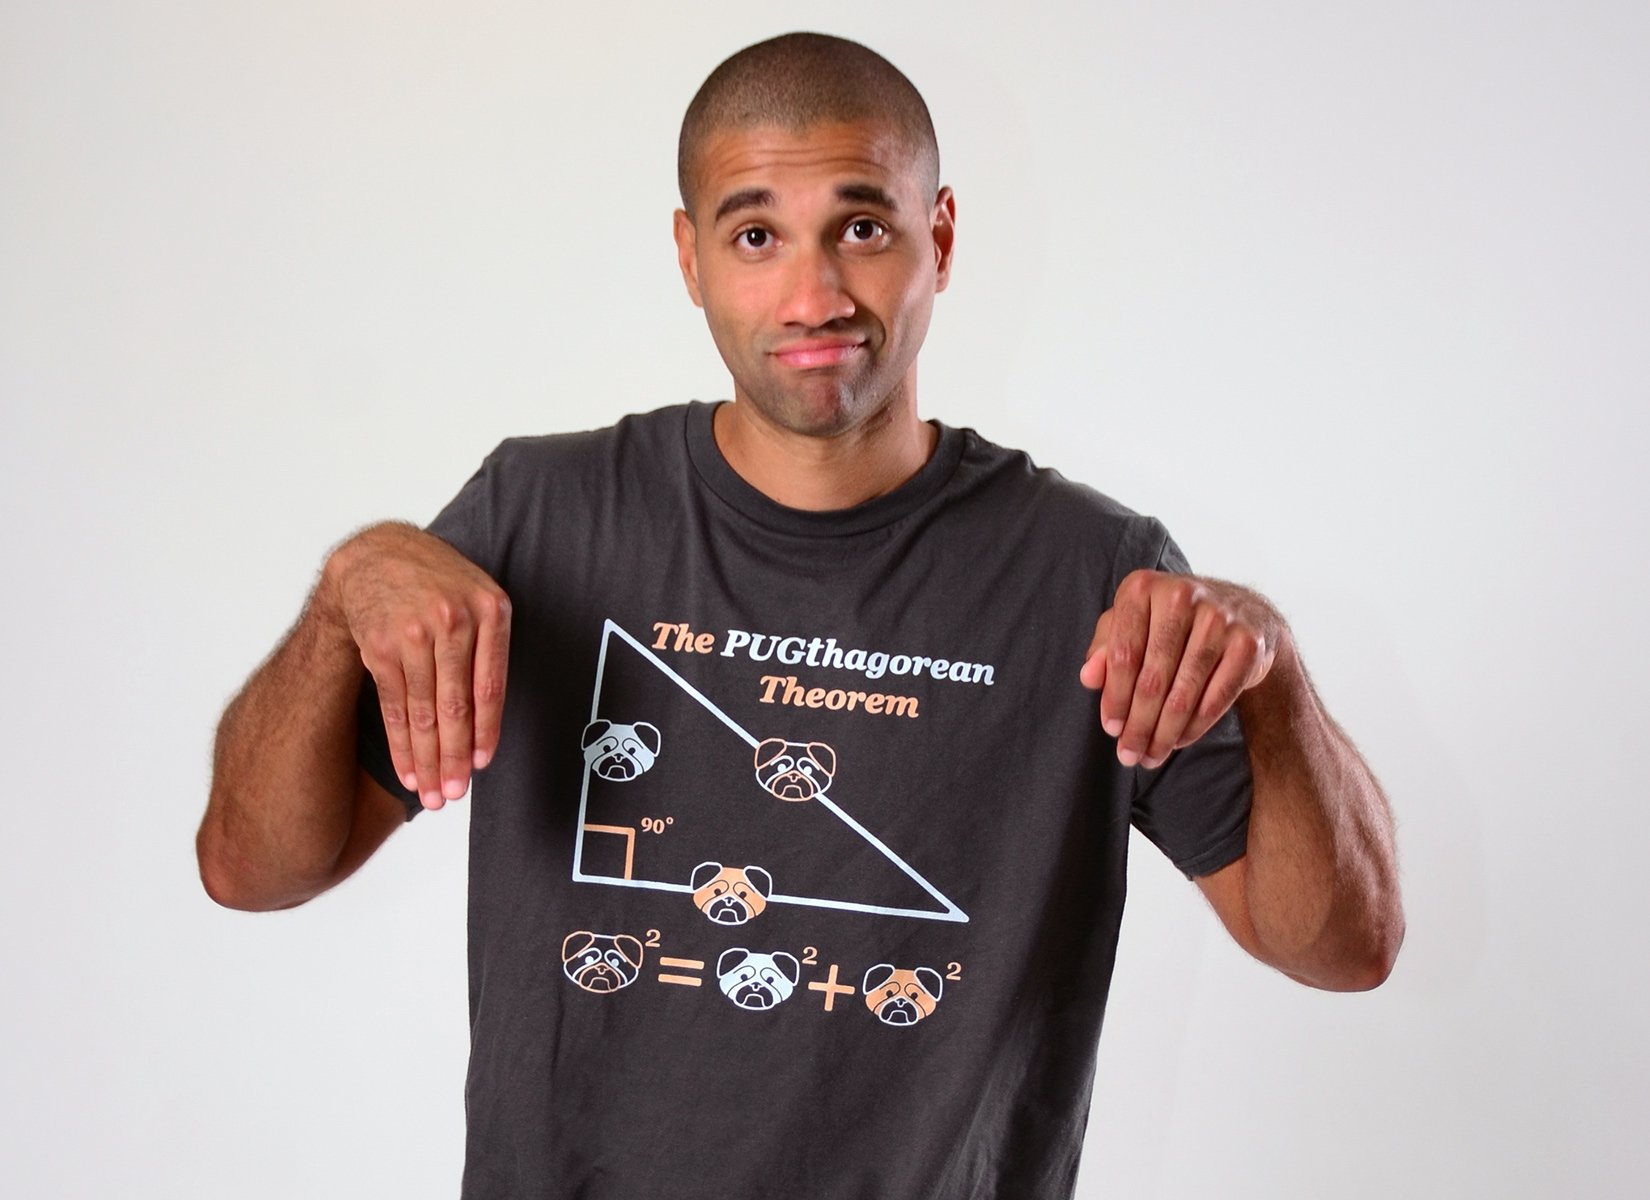 Pugthagorean Theorem on Mens T-Shirt